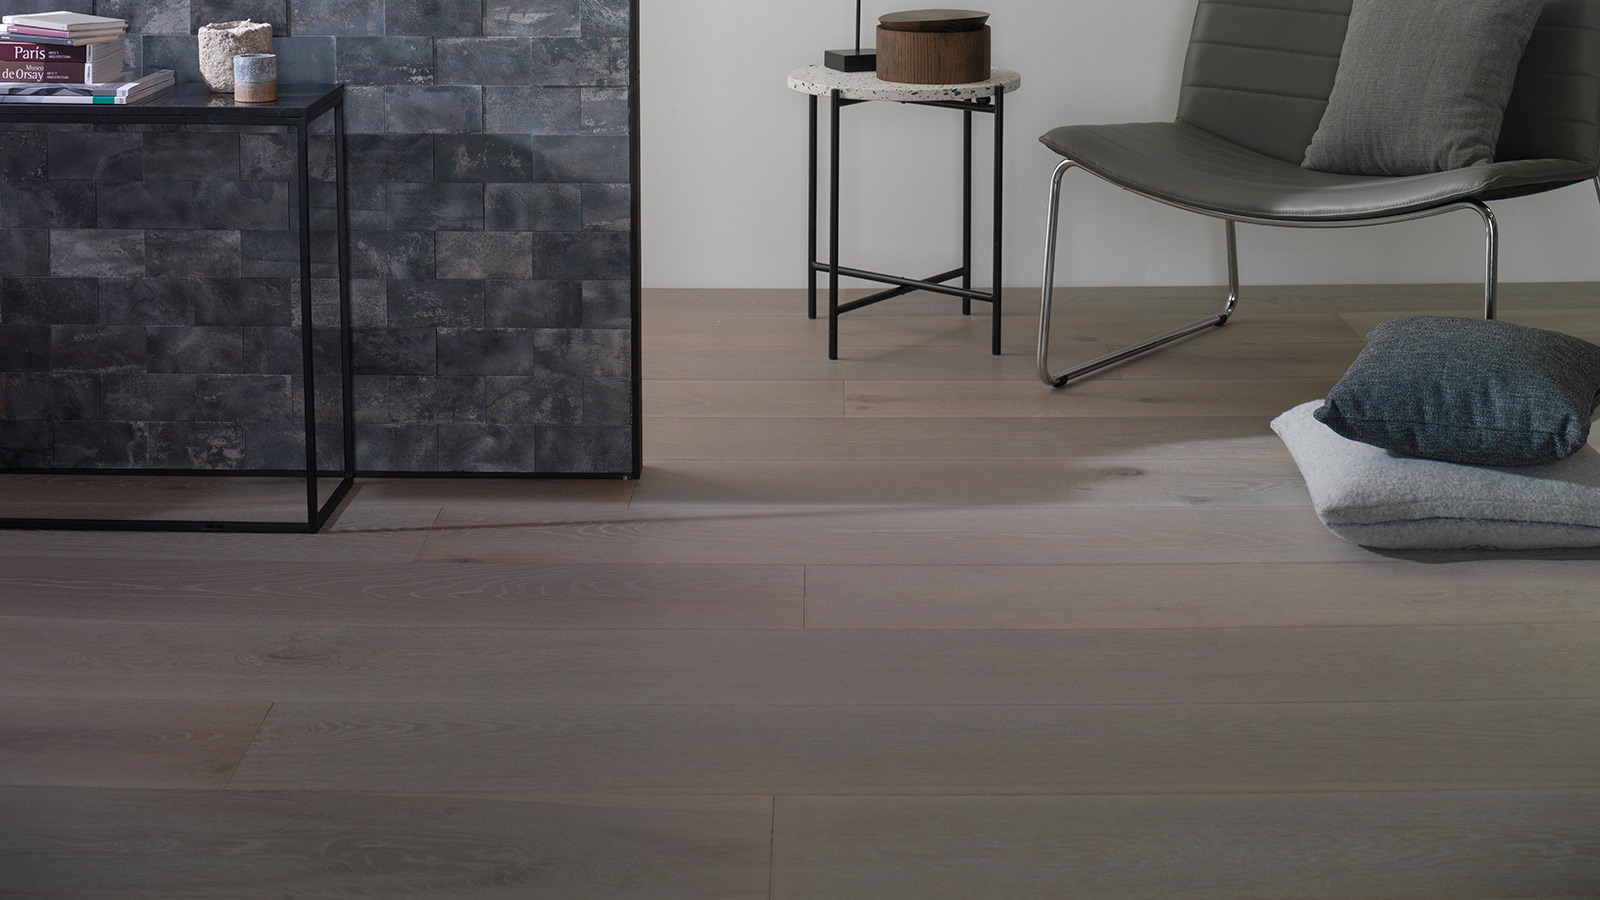 Parque-Wald-1L-Custom-Osning+Revestimiento-Worn-Anthracite-Antic-Colonial-Porcelanosa